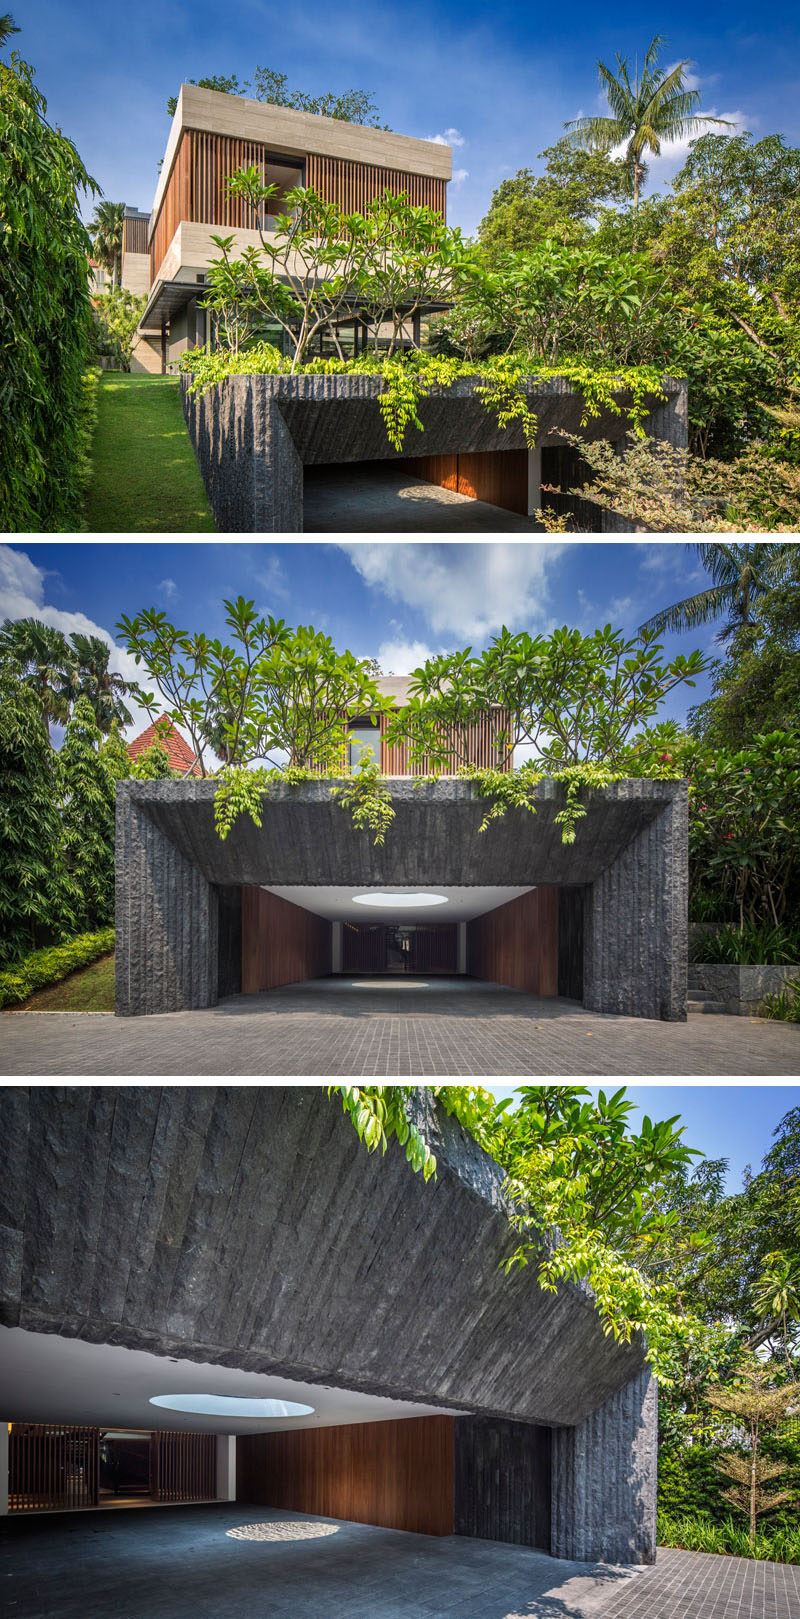 Upon entering through the front gate of this Singaporean home, a cave-like entrance guides to into the home.